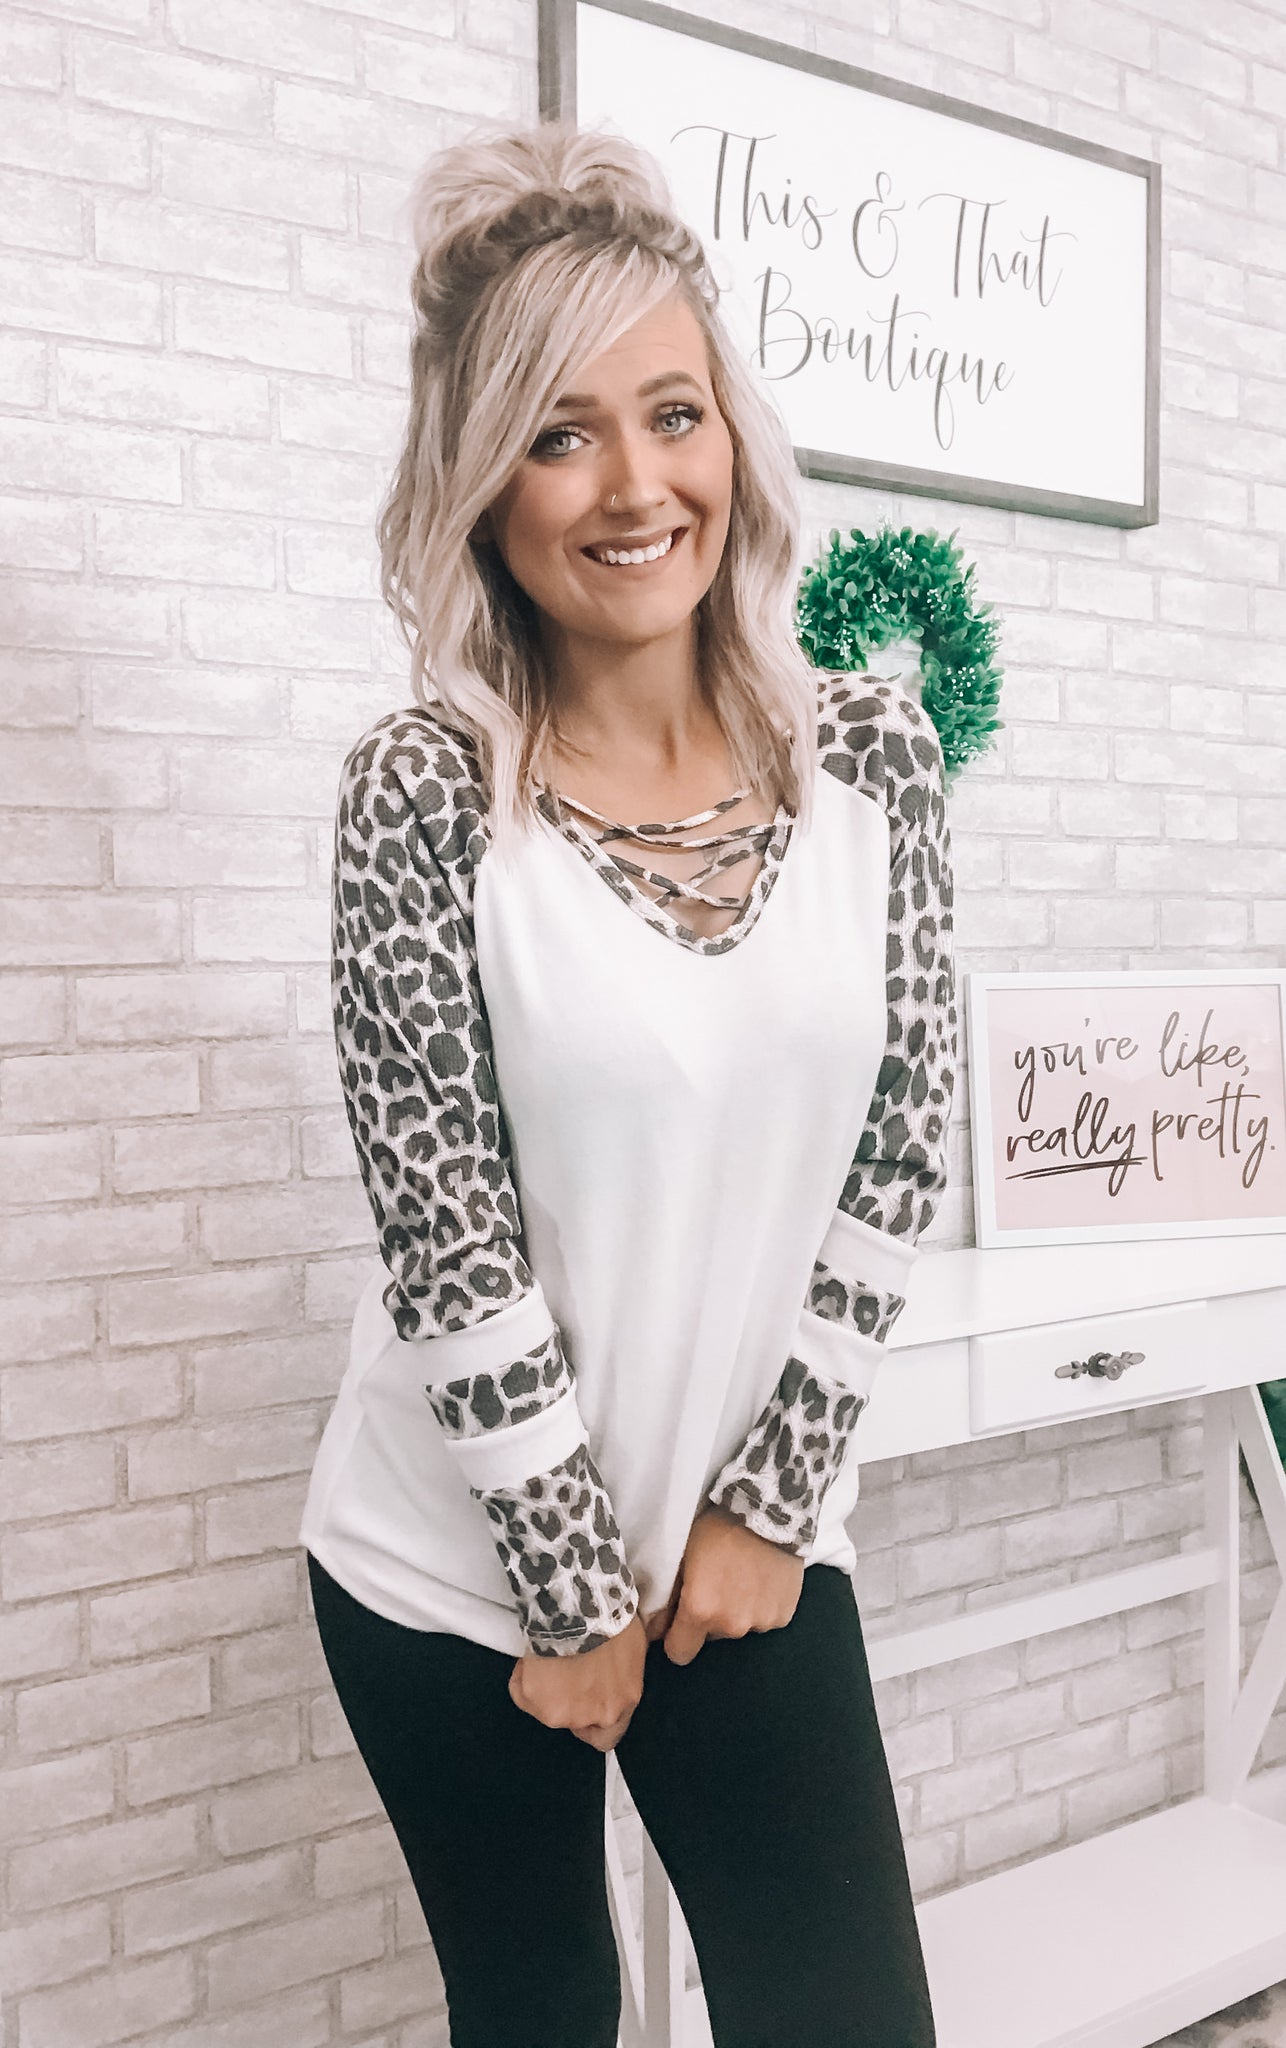 Leopard Sleeve Top - This & That Boutique Shop